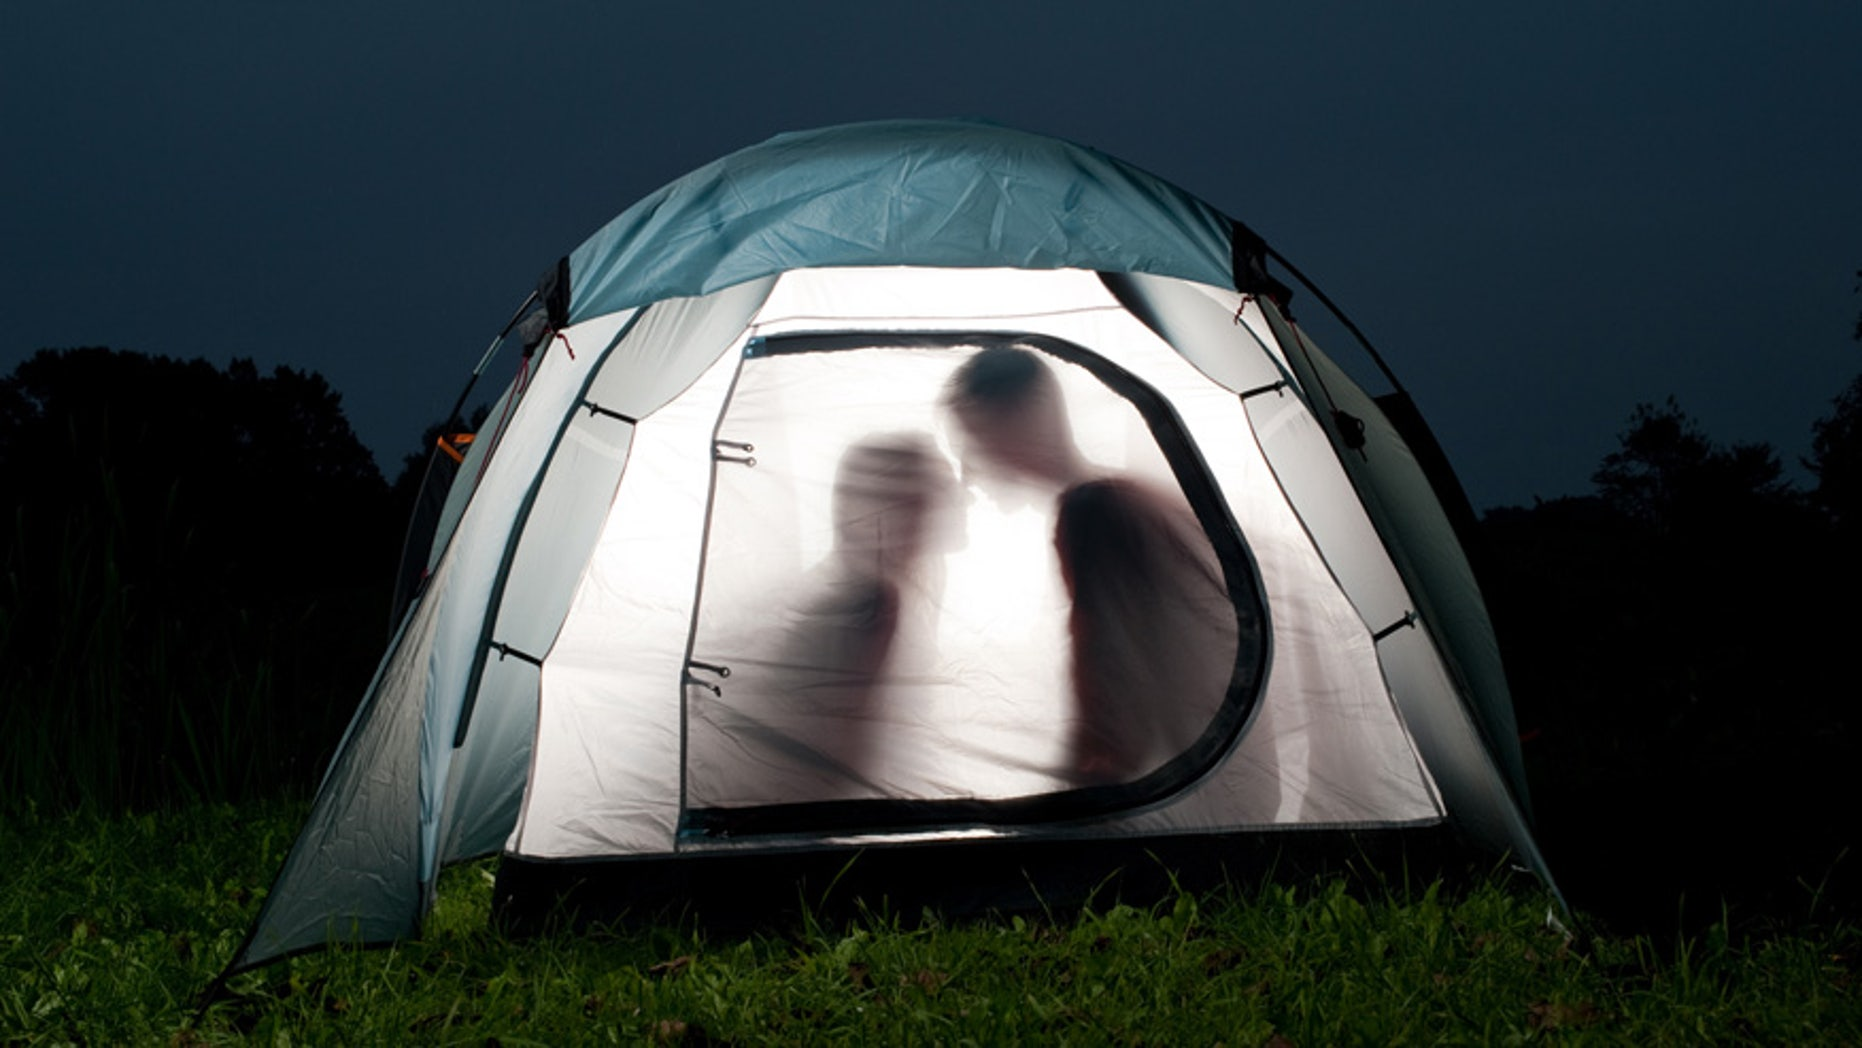 Business is booming at a new 'naughty' campsite in France.